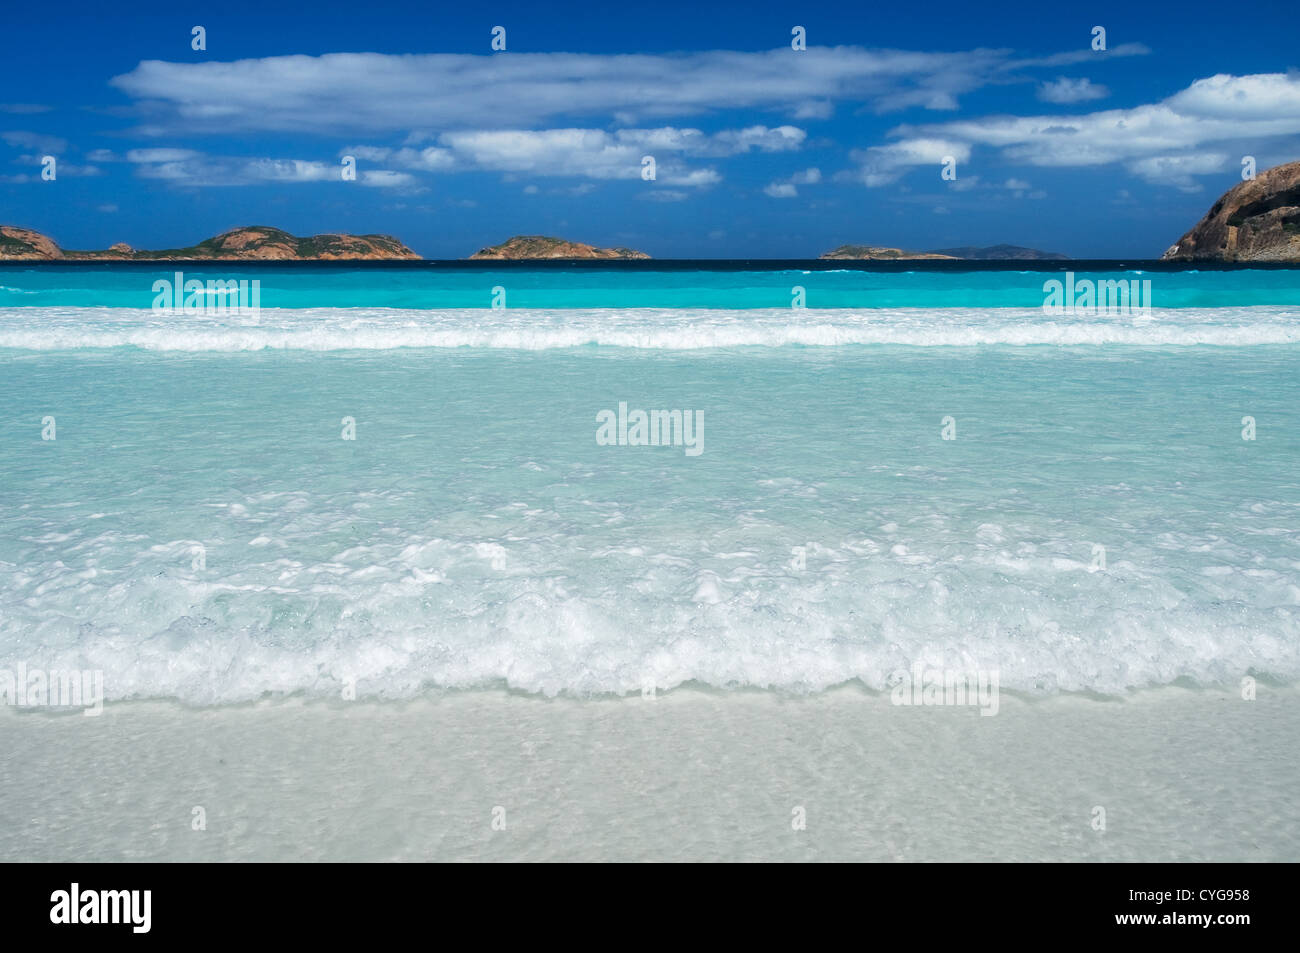 Turquoise Waters in Lucky Bay. - Stock Image